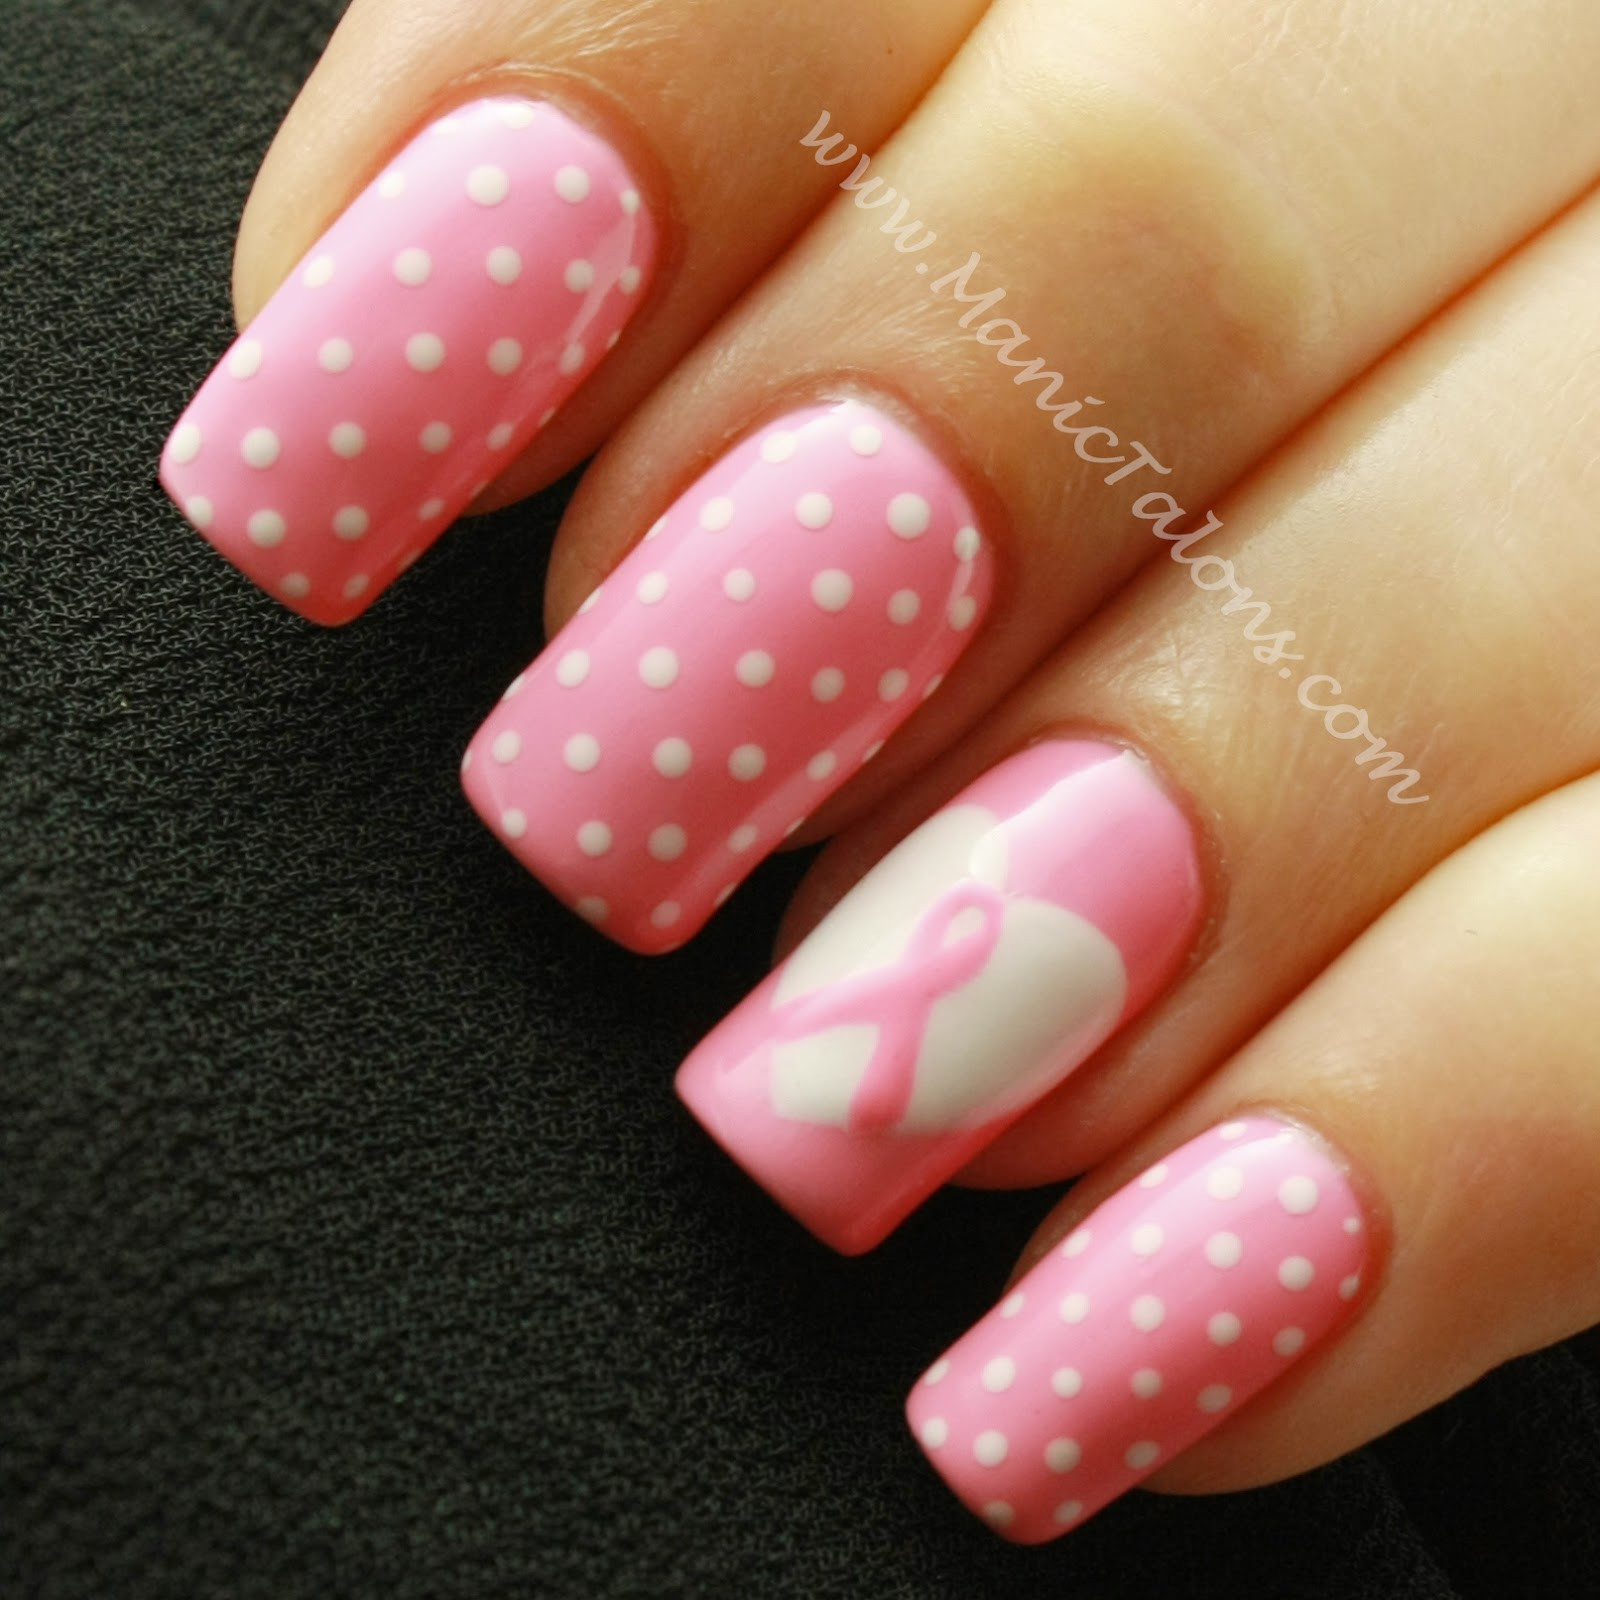 Manic Talons Nail Design: Weekly Mani: Breast Cancer Awareness with ...